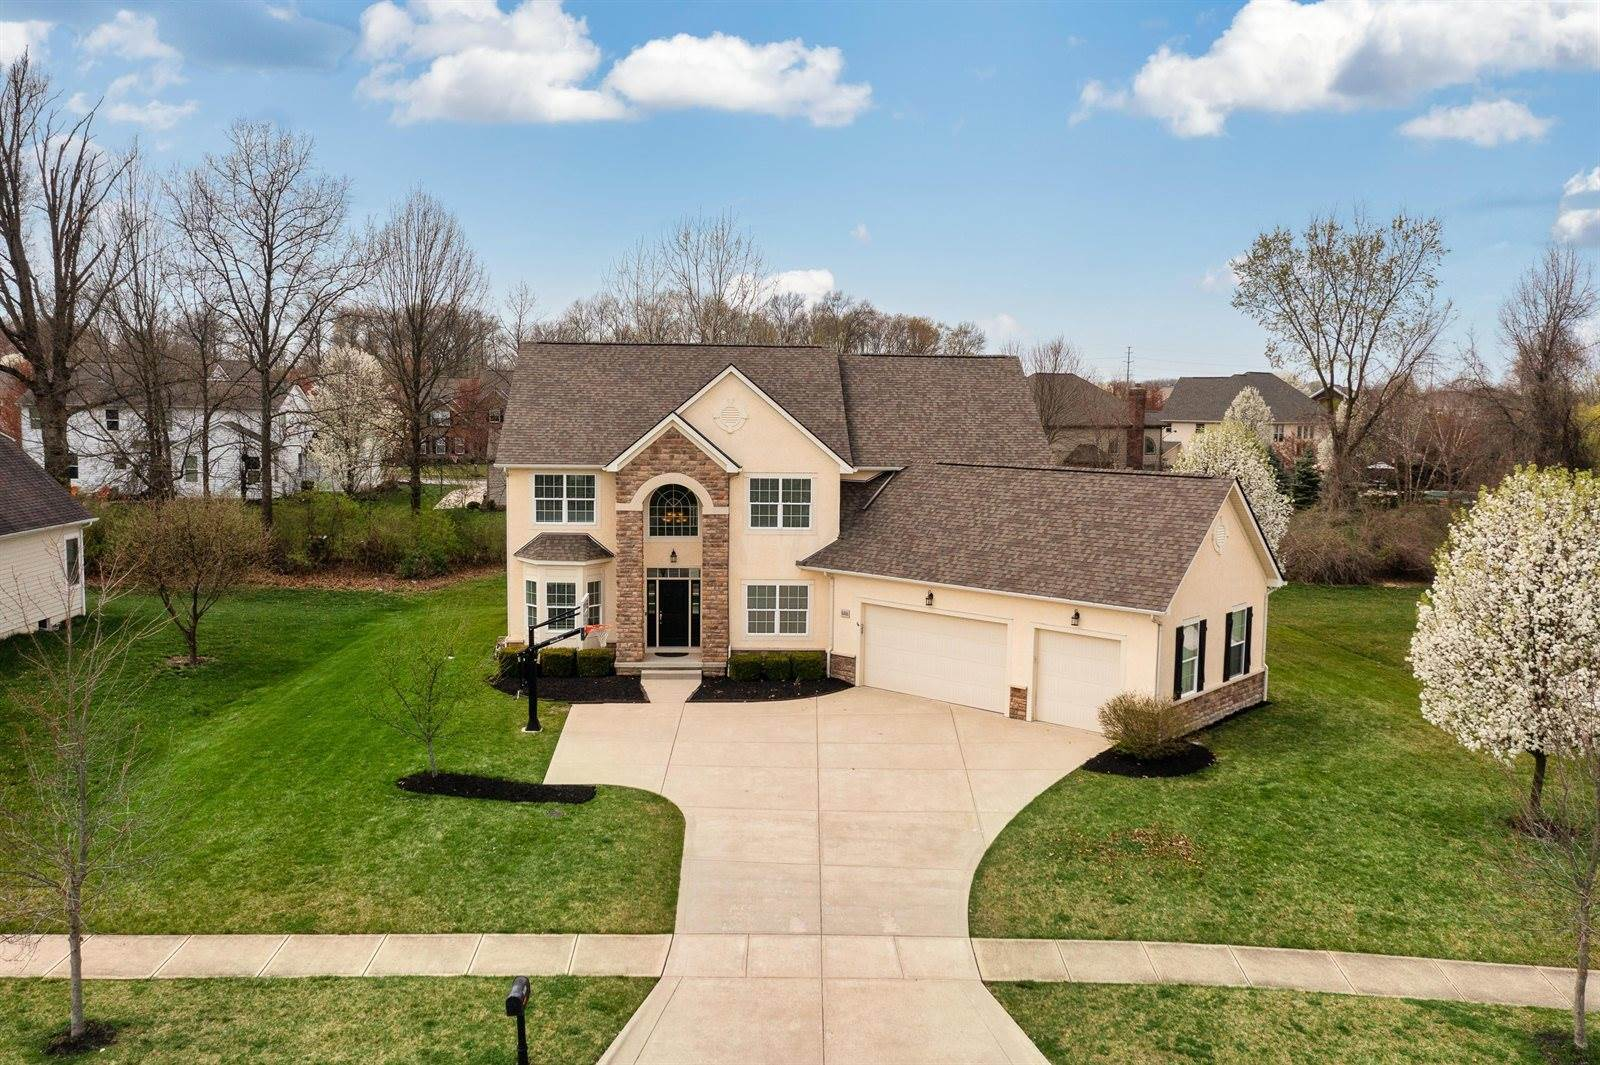 8486 Rutherford Estates Drive, Powell, OH 43065